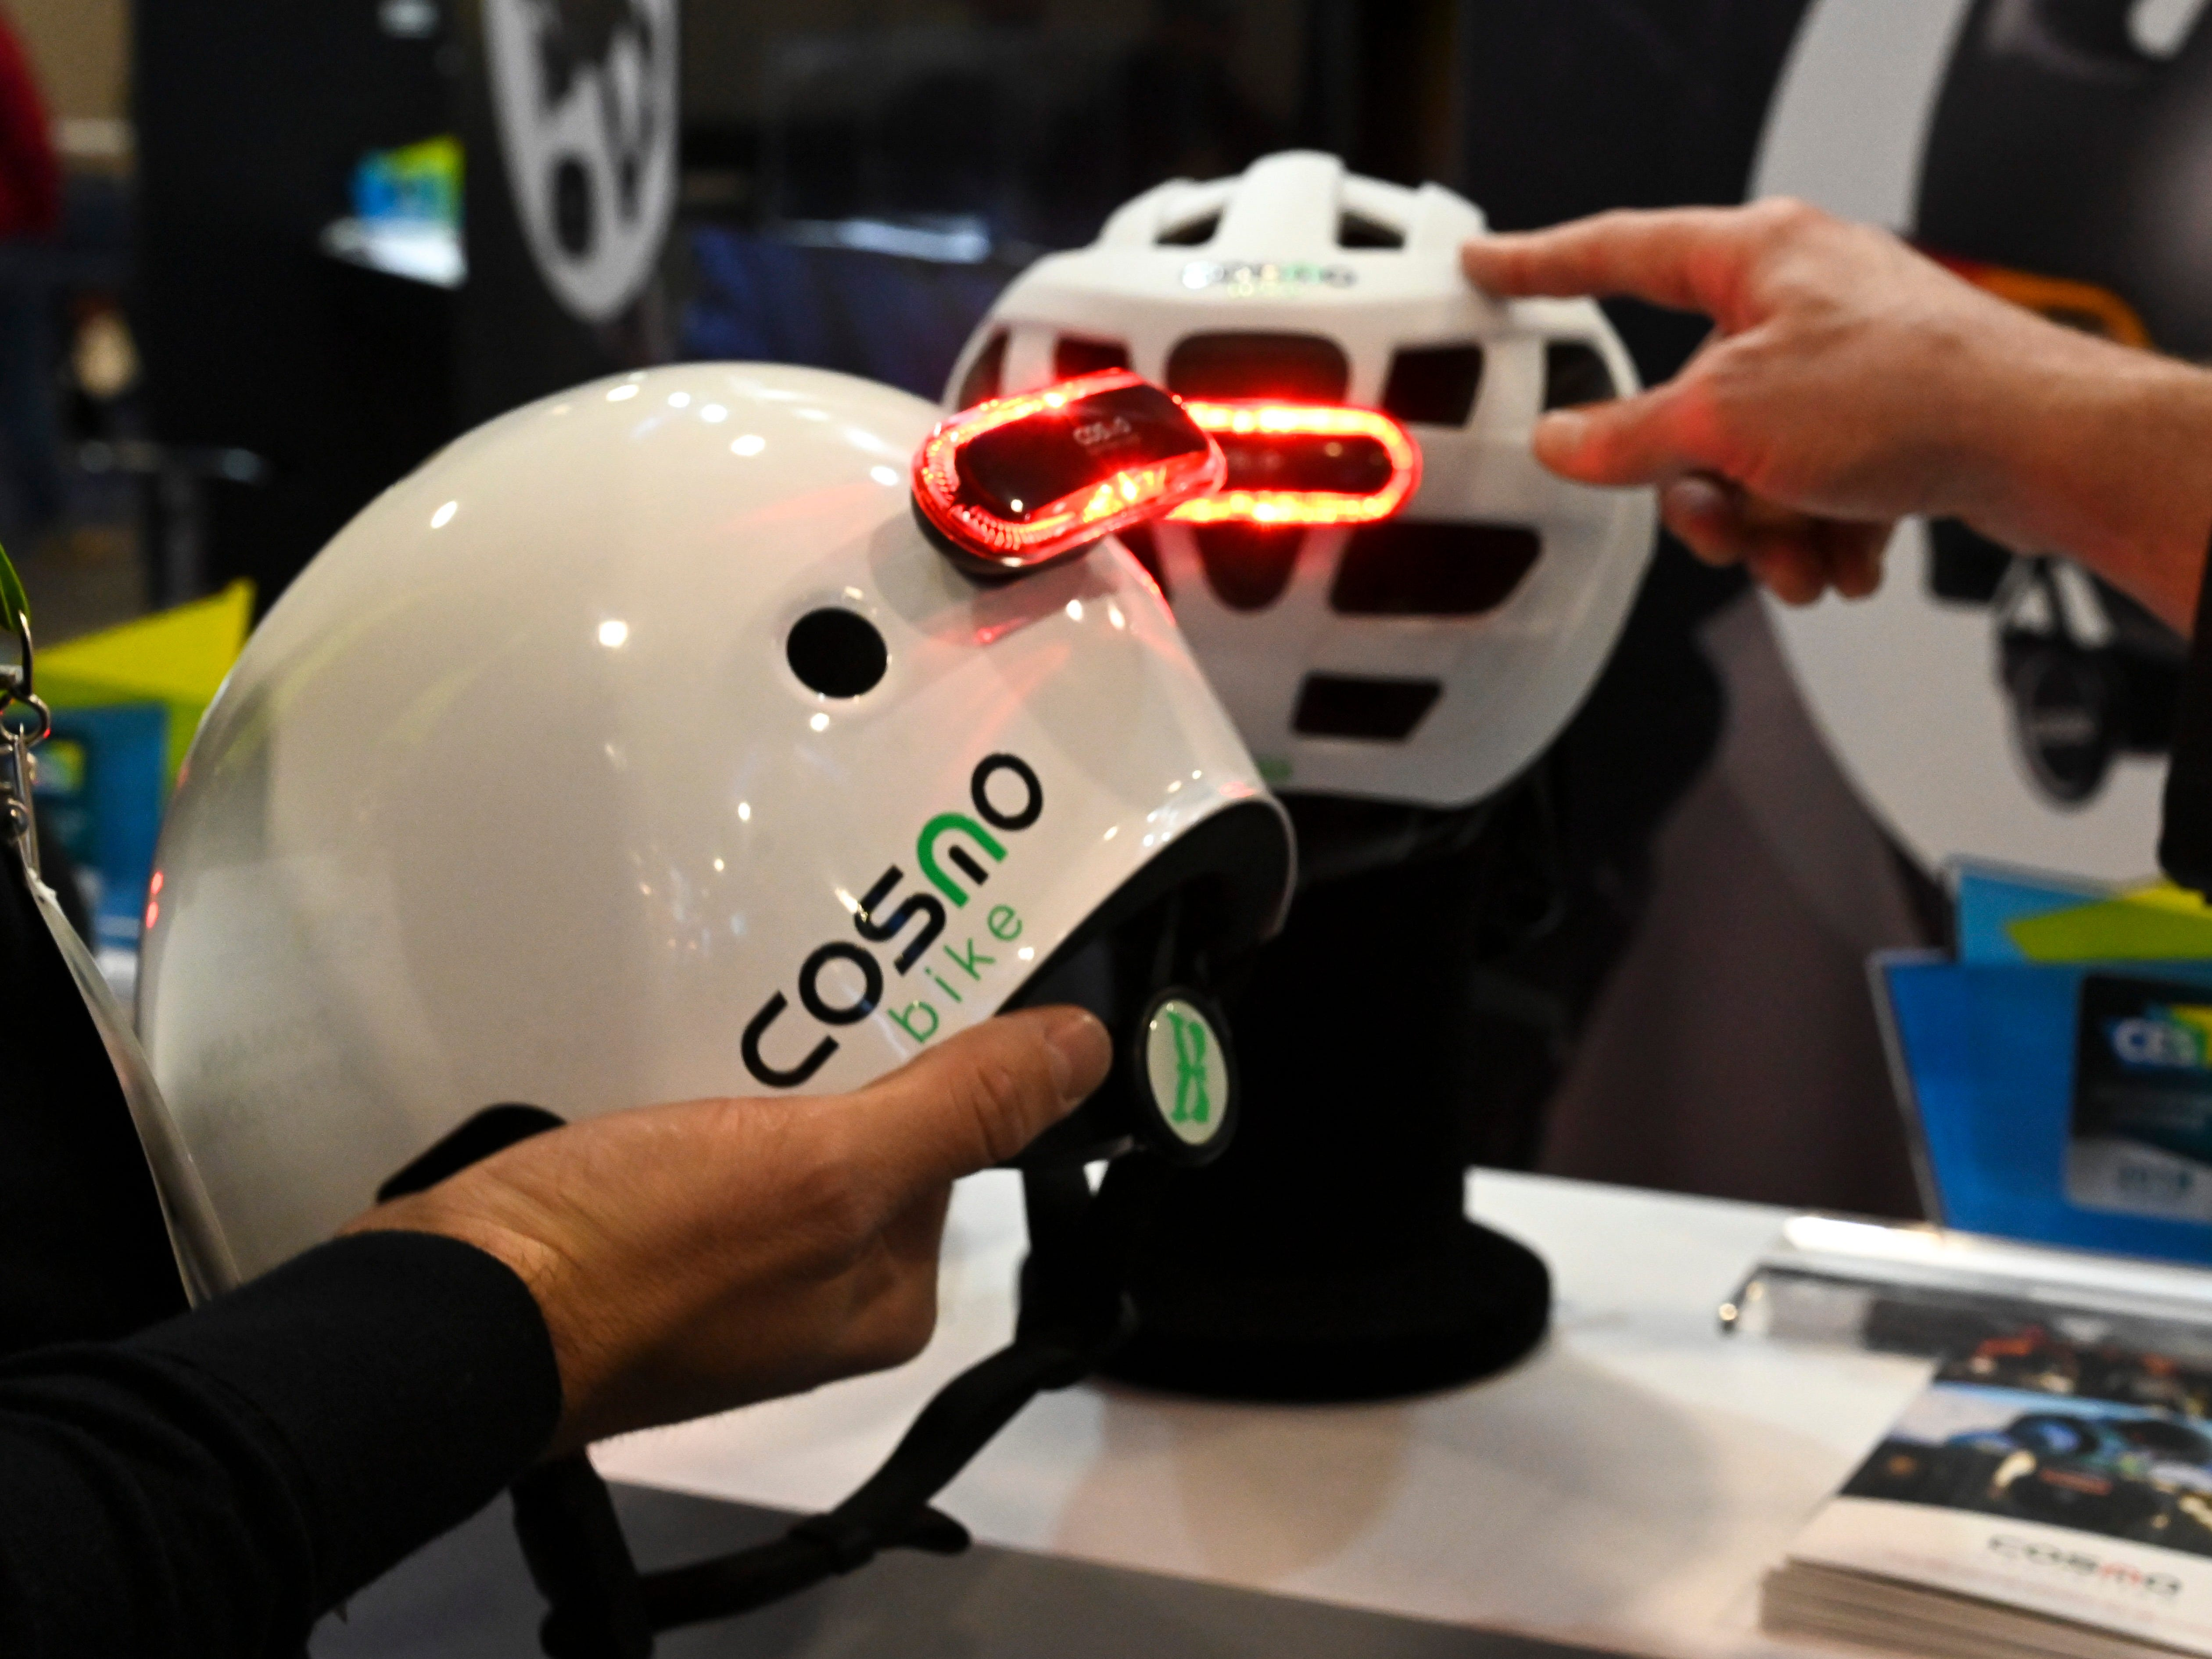 Cosmo Bike is a smart bike light with features including a tail and warning light plus turn signals.  The light has several options for mounting such as on the helmet or bike seat and has the ability to detect falls and to alter emergency contacts.